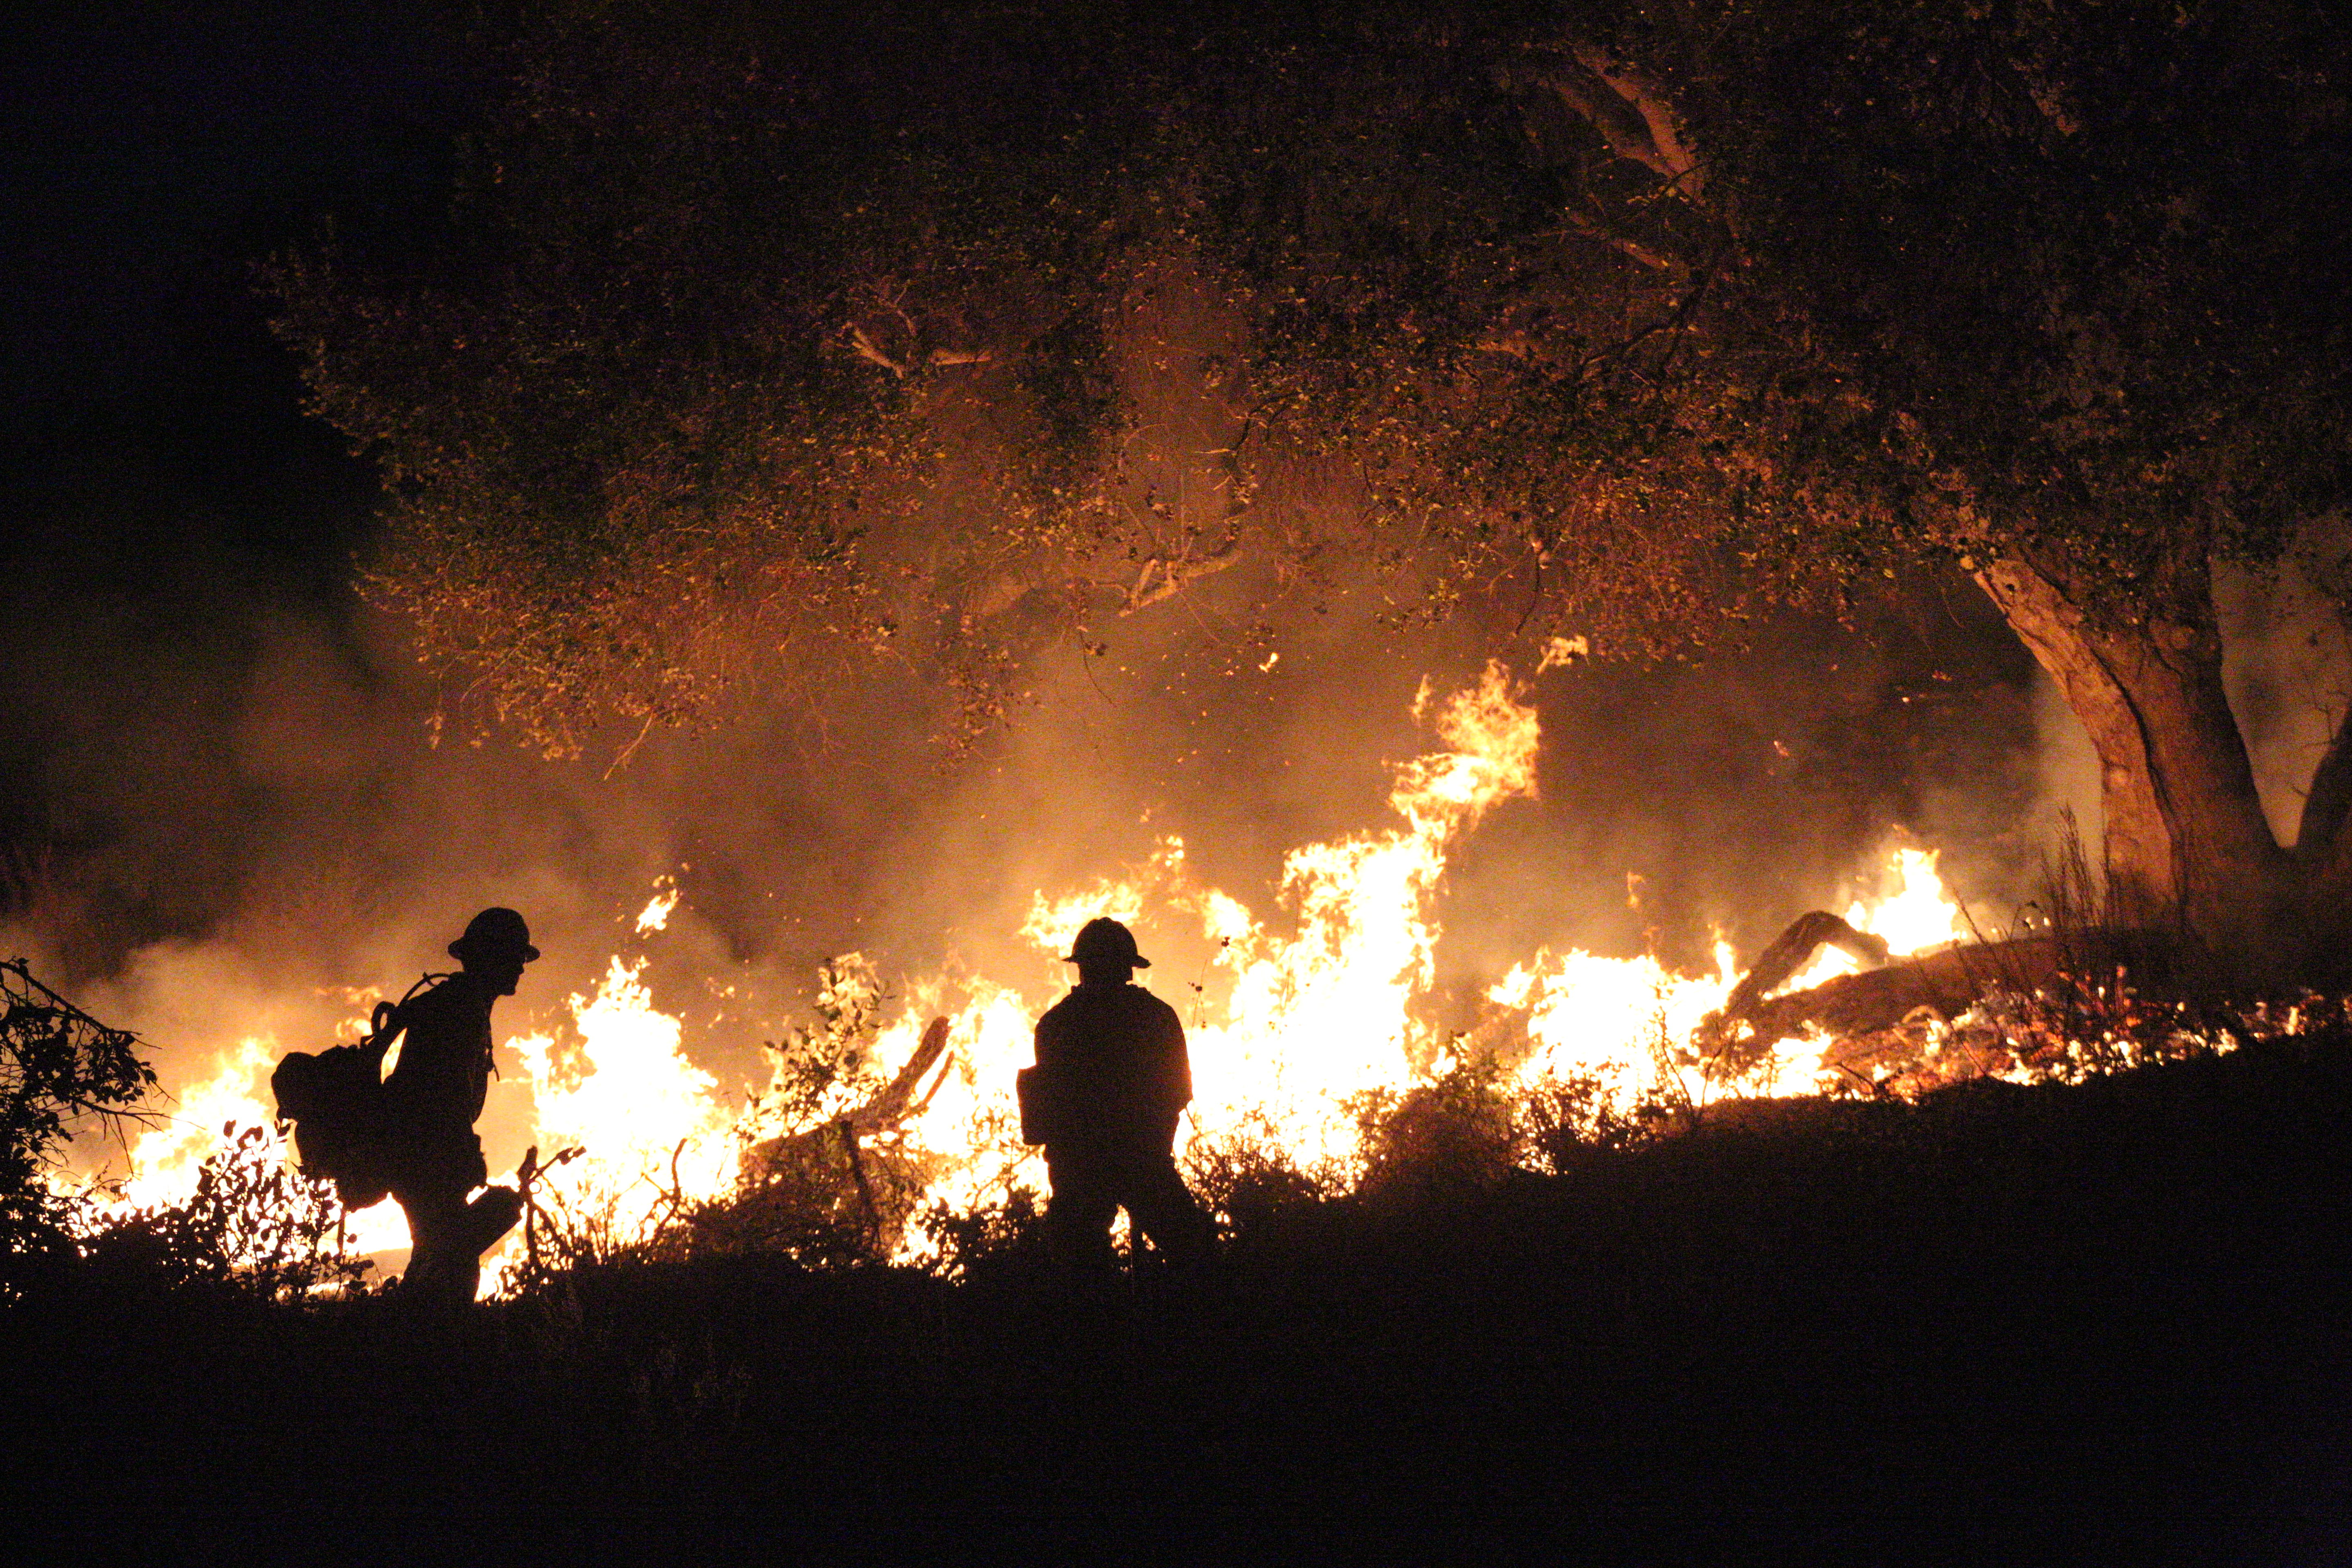 Forest rangers battling forest fire